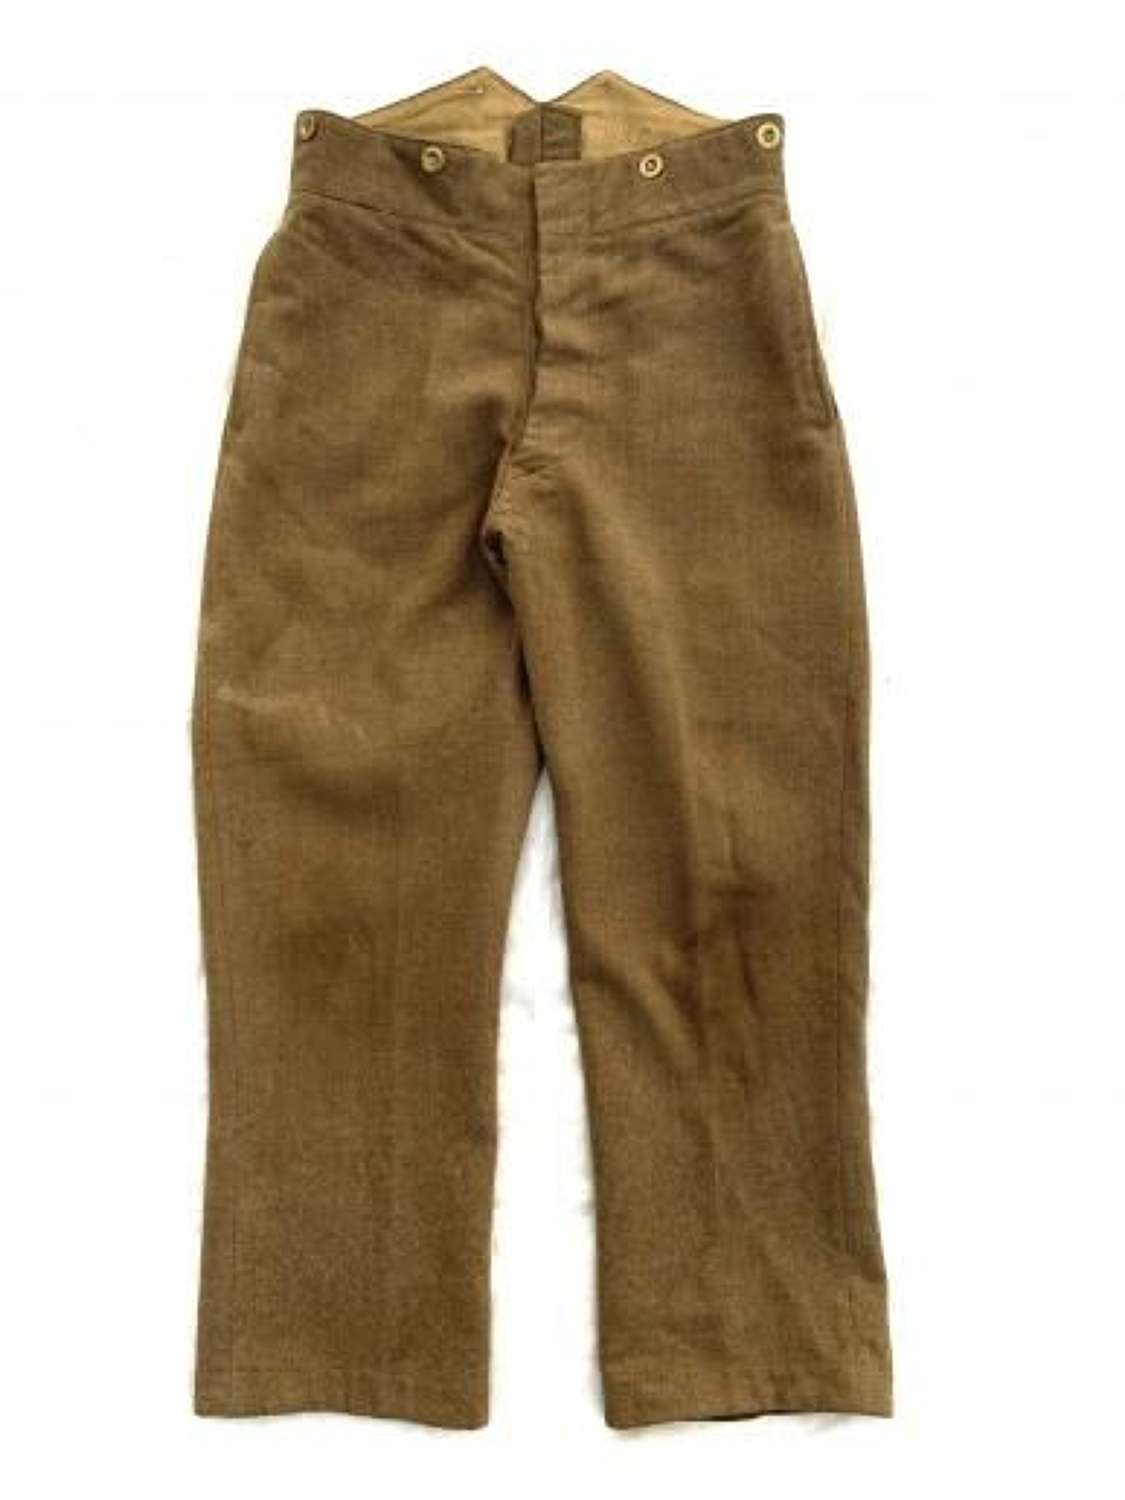 Original 1942 Dated British Army Service Dress Trousers